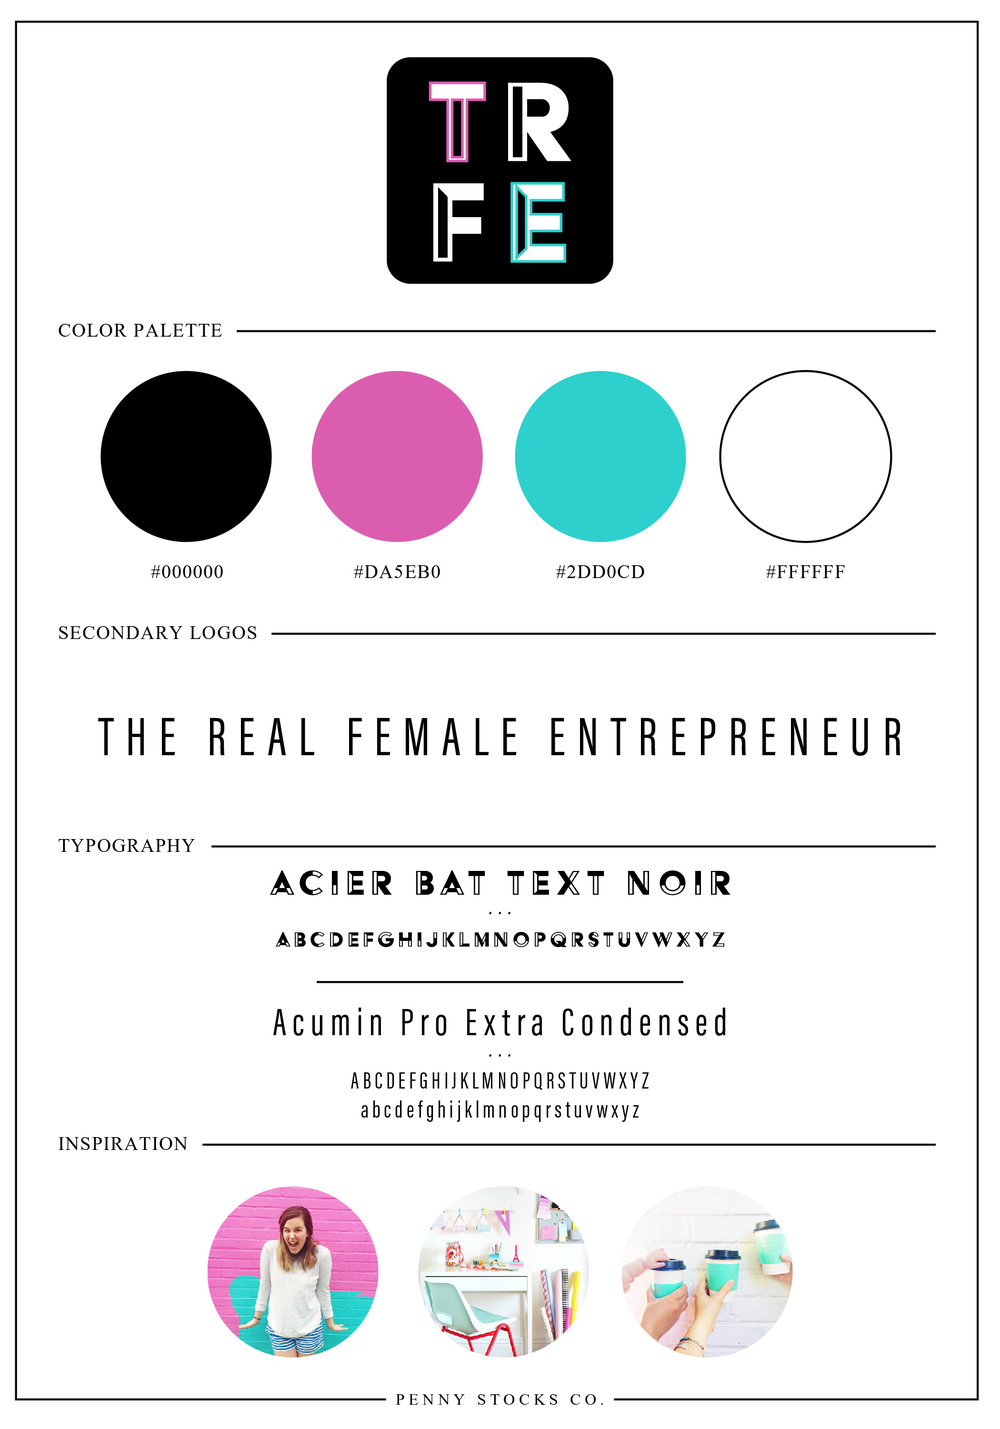 kristen-fulchi-design-studio-branding-for-the-real-female-entrepreneur-branding-for-creatives.jpg